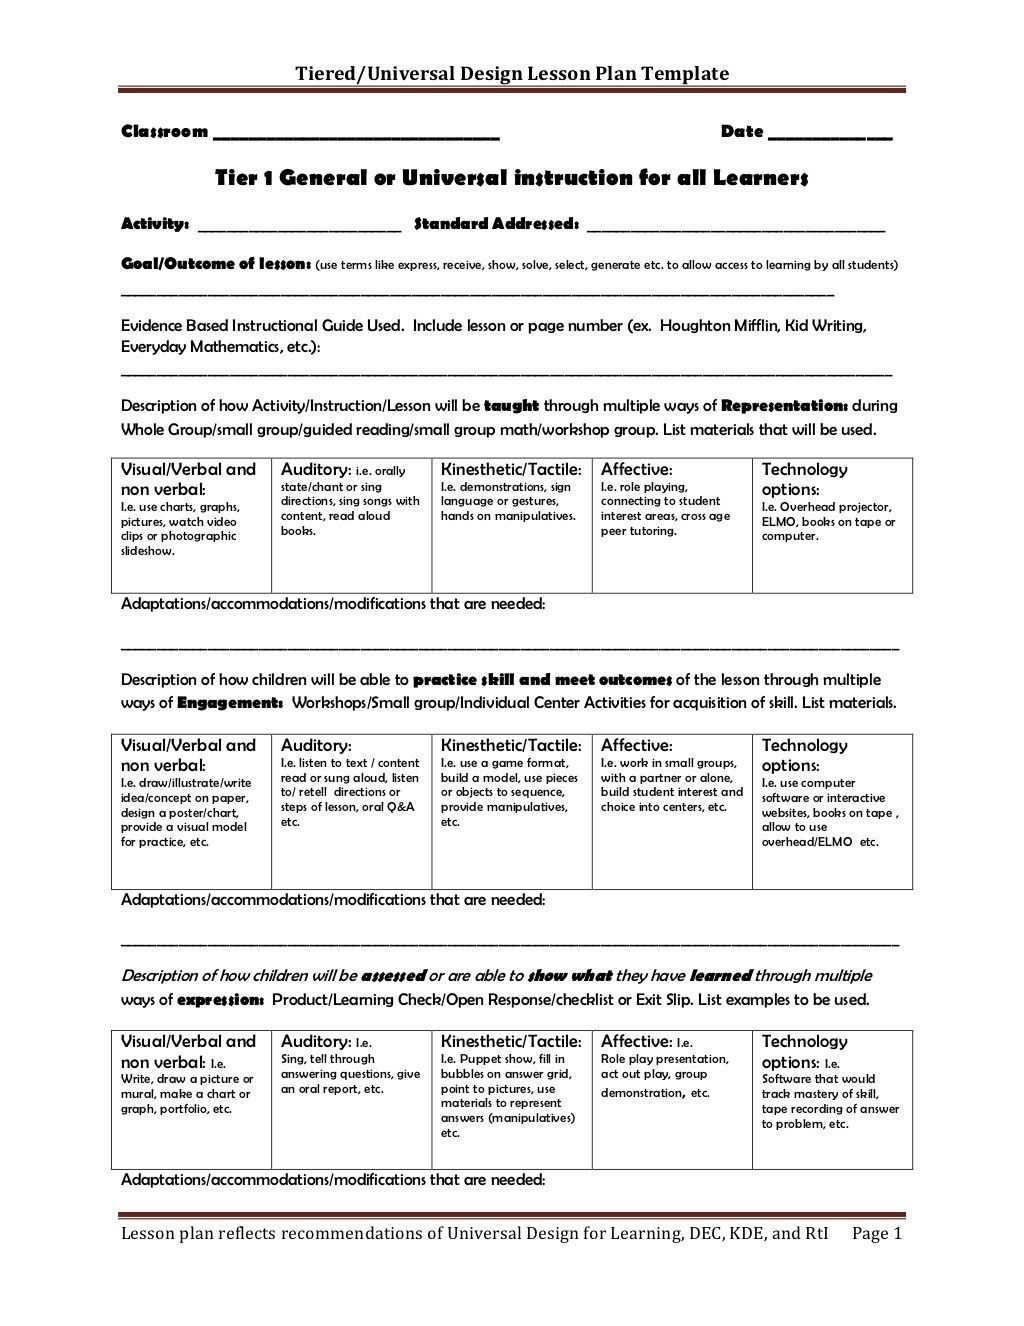 Tier 2 Lesson Plan  How To Get People To Like Tier 2 Lesson Plan